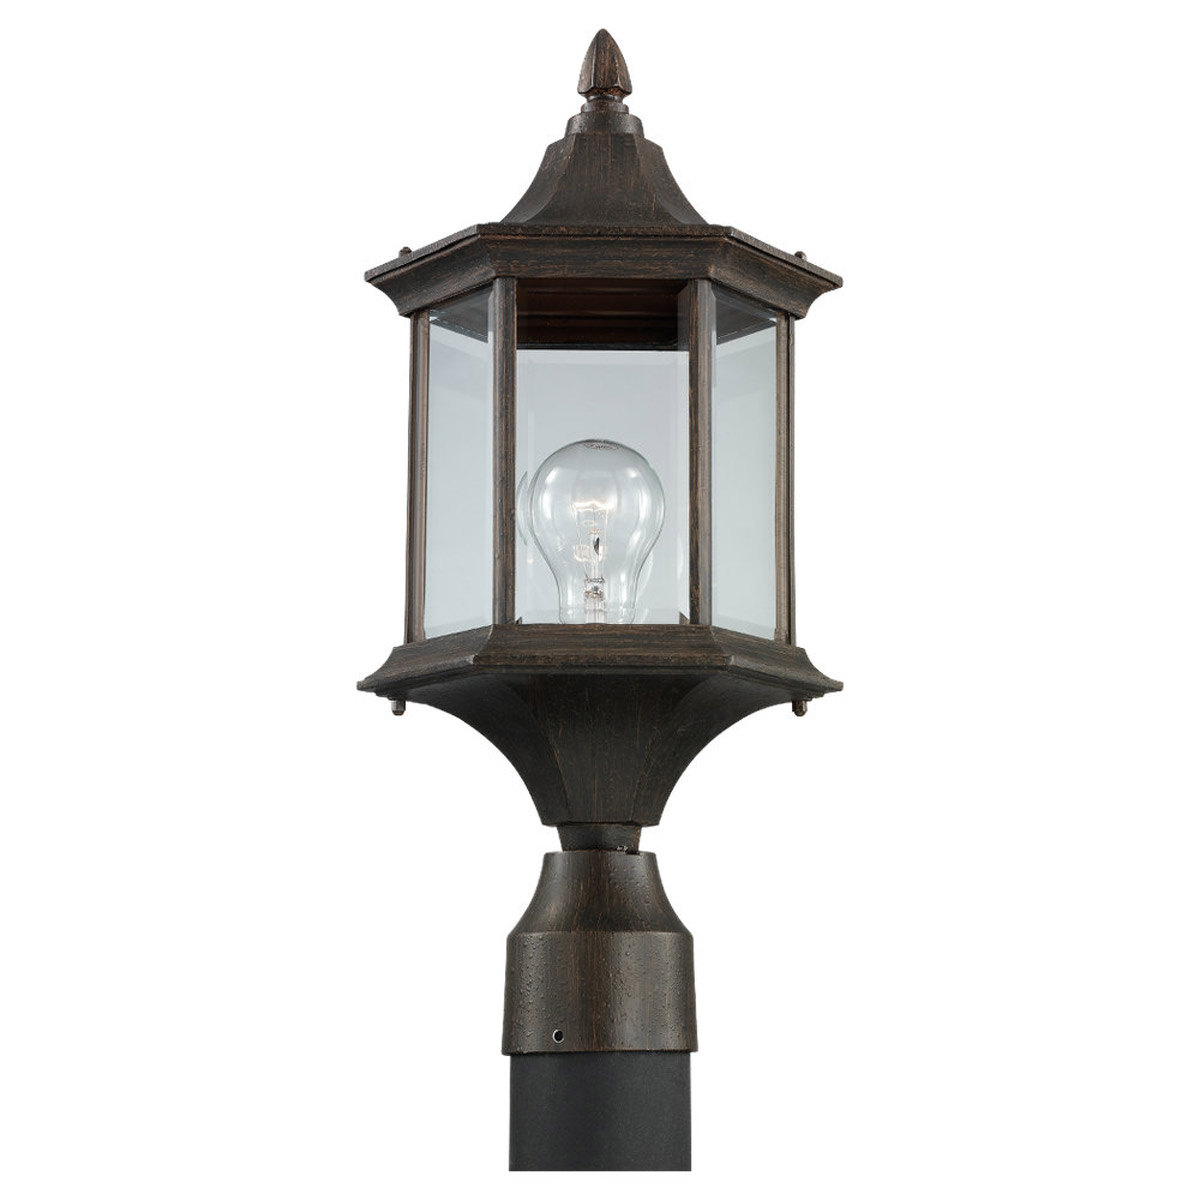 Sea Gull Lighting Ardsley Court 1 Light Outdoor Post Lantern in Textured Rust Patina 82136-08